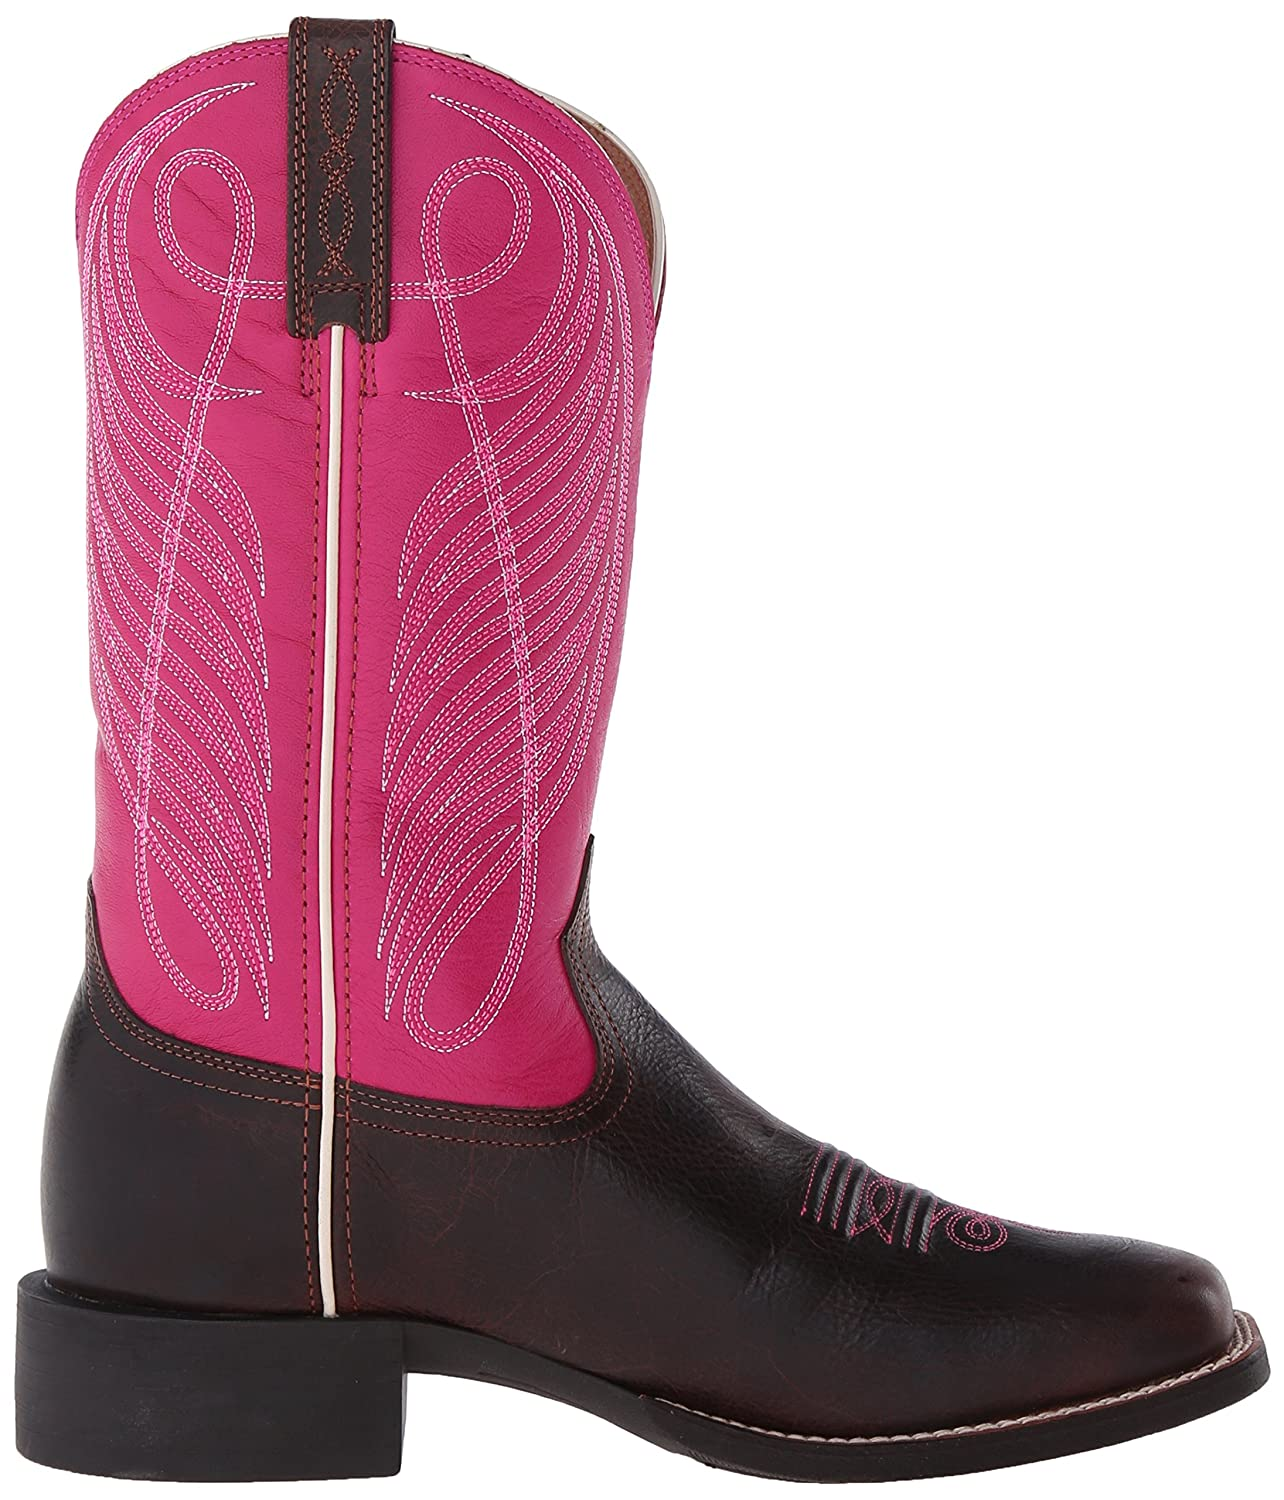 Ariat Women's Round up Wide Square Toe Western Cowboy Boot B00U9XX0RS 5.5 B(M) US|Wicker/Hot Pink